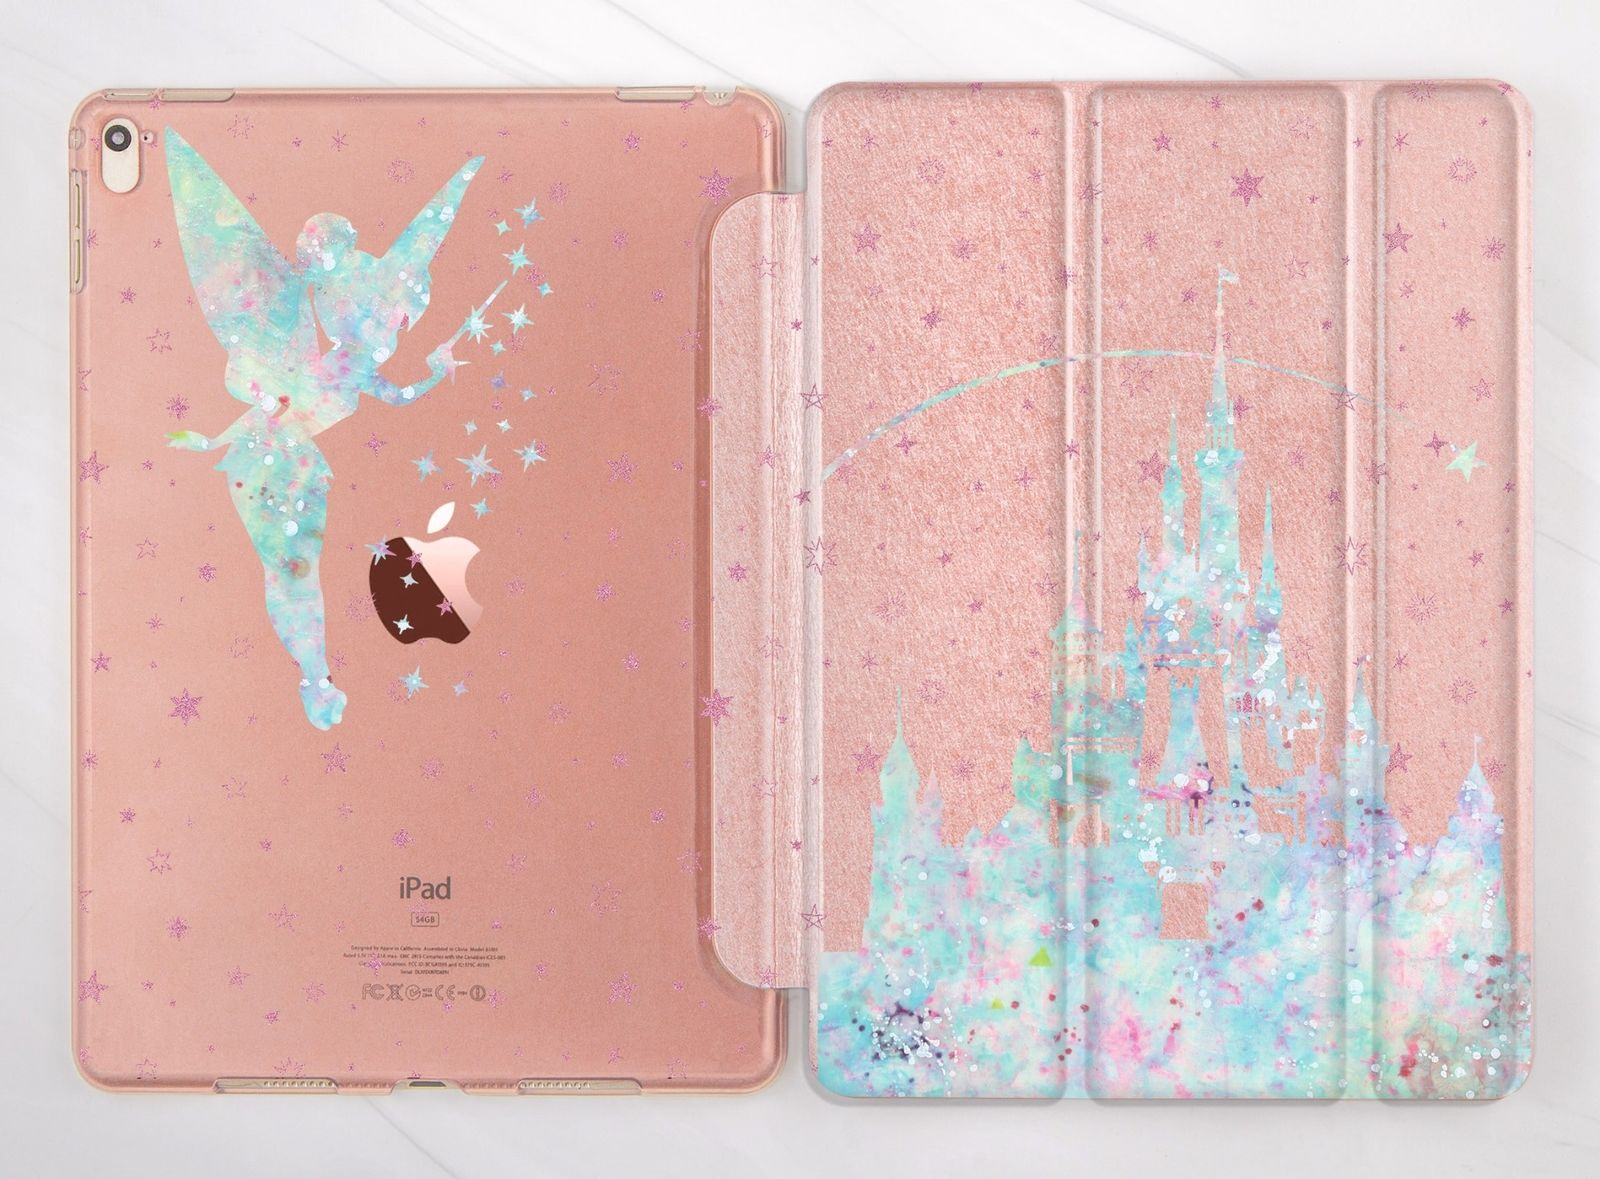 12 99 Disney Castle Rose Gold Smart Cover Case Stand For Ipad Pro 9 7 Air Mini 2 3 4 Ebay Electroni Cute Ipad Cases Disney Ipad Case Ipad Mini Accessories